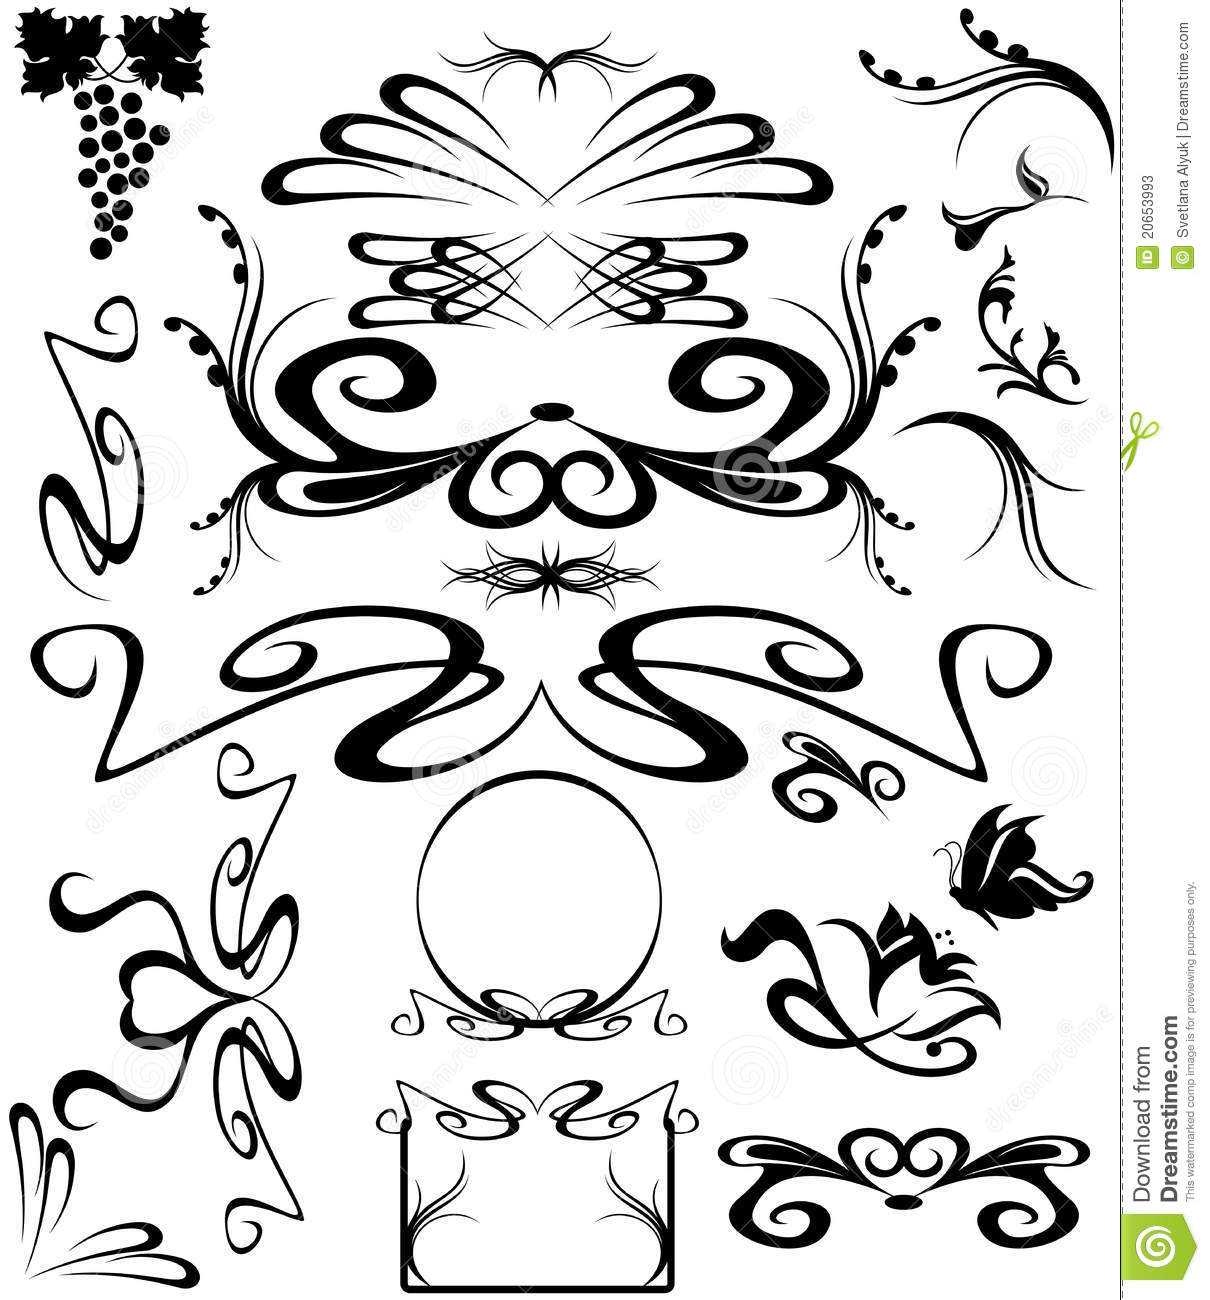 Art Nouveau vector stock vector. Image of isolated, frame